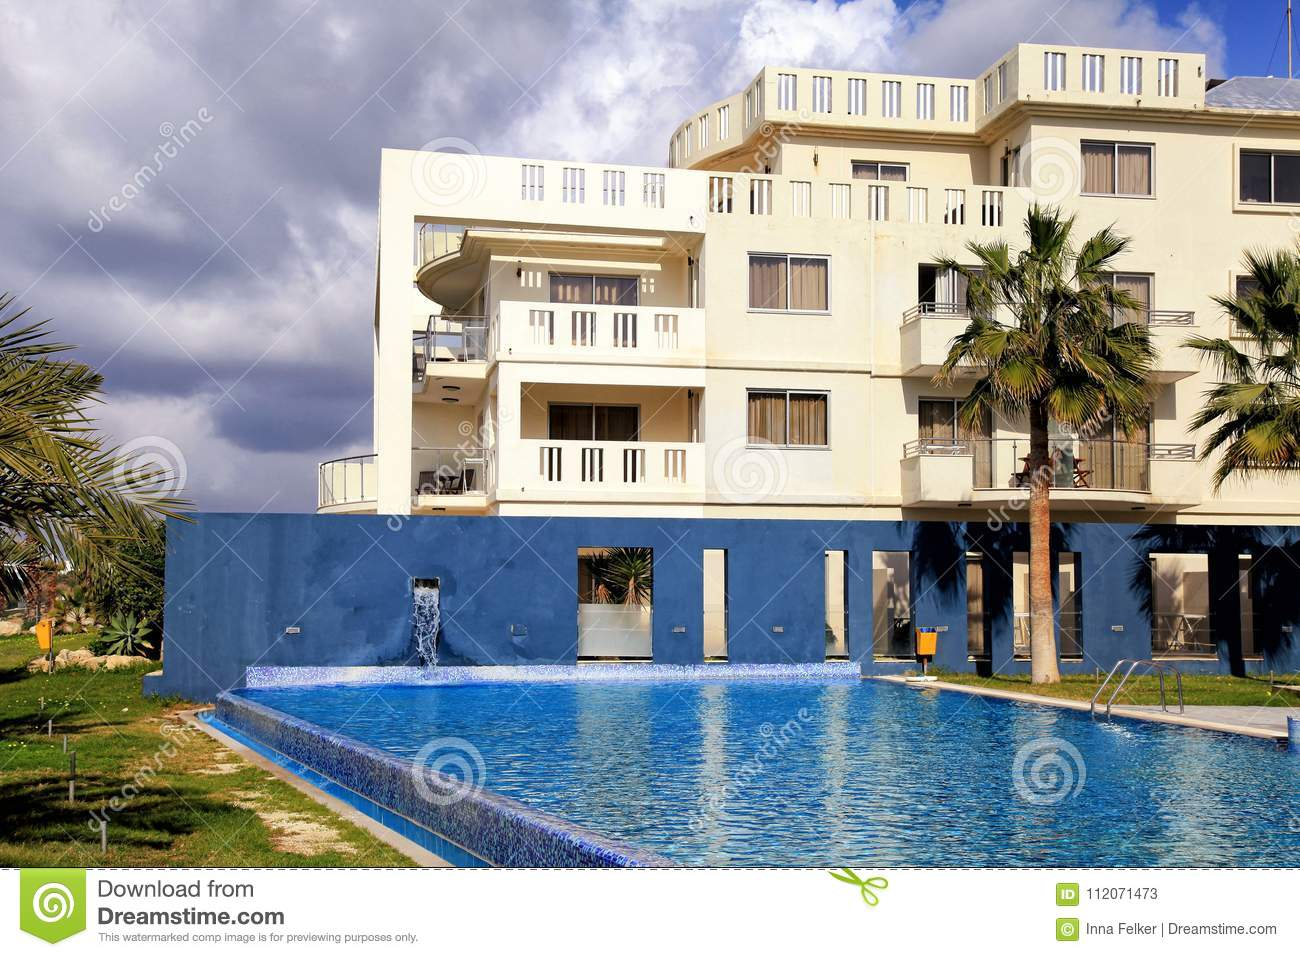 Hotel, swimming pool and palm trees, Cyprus.